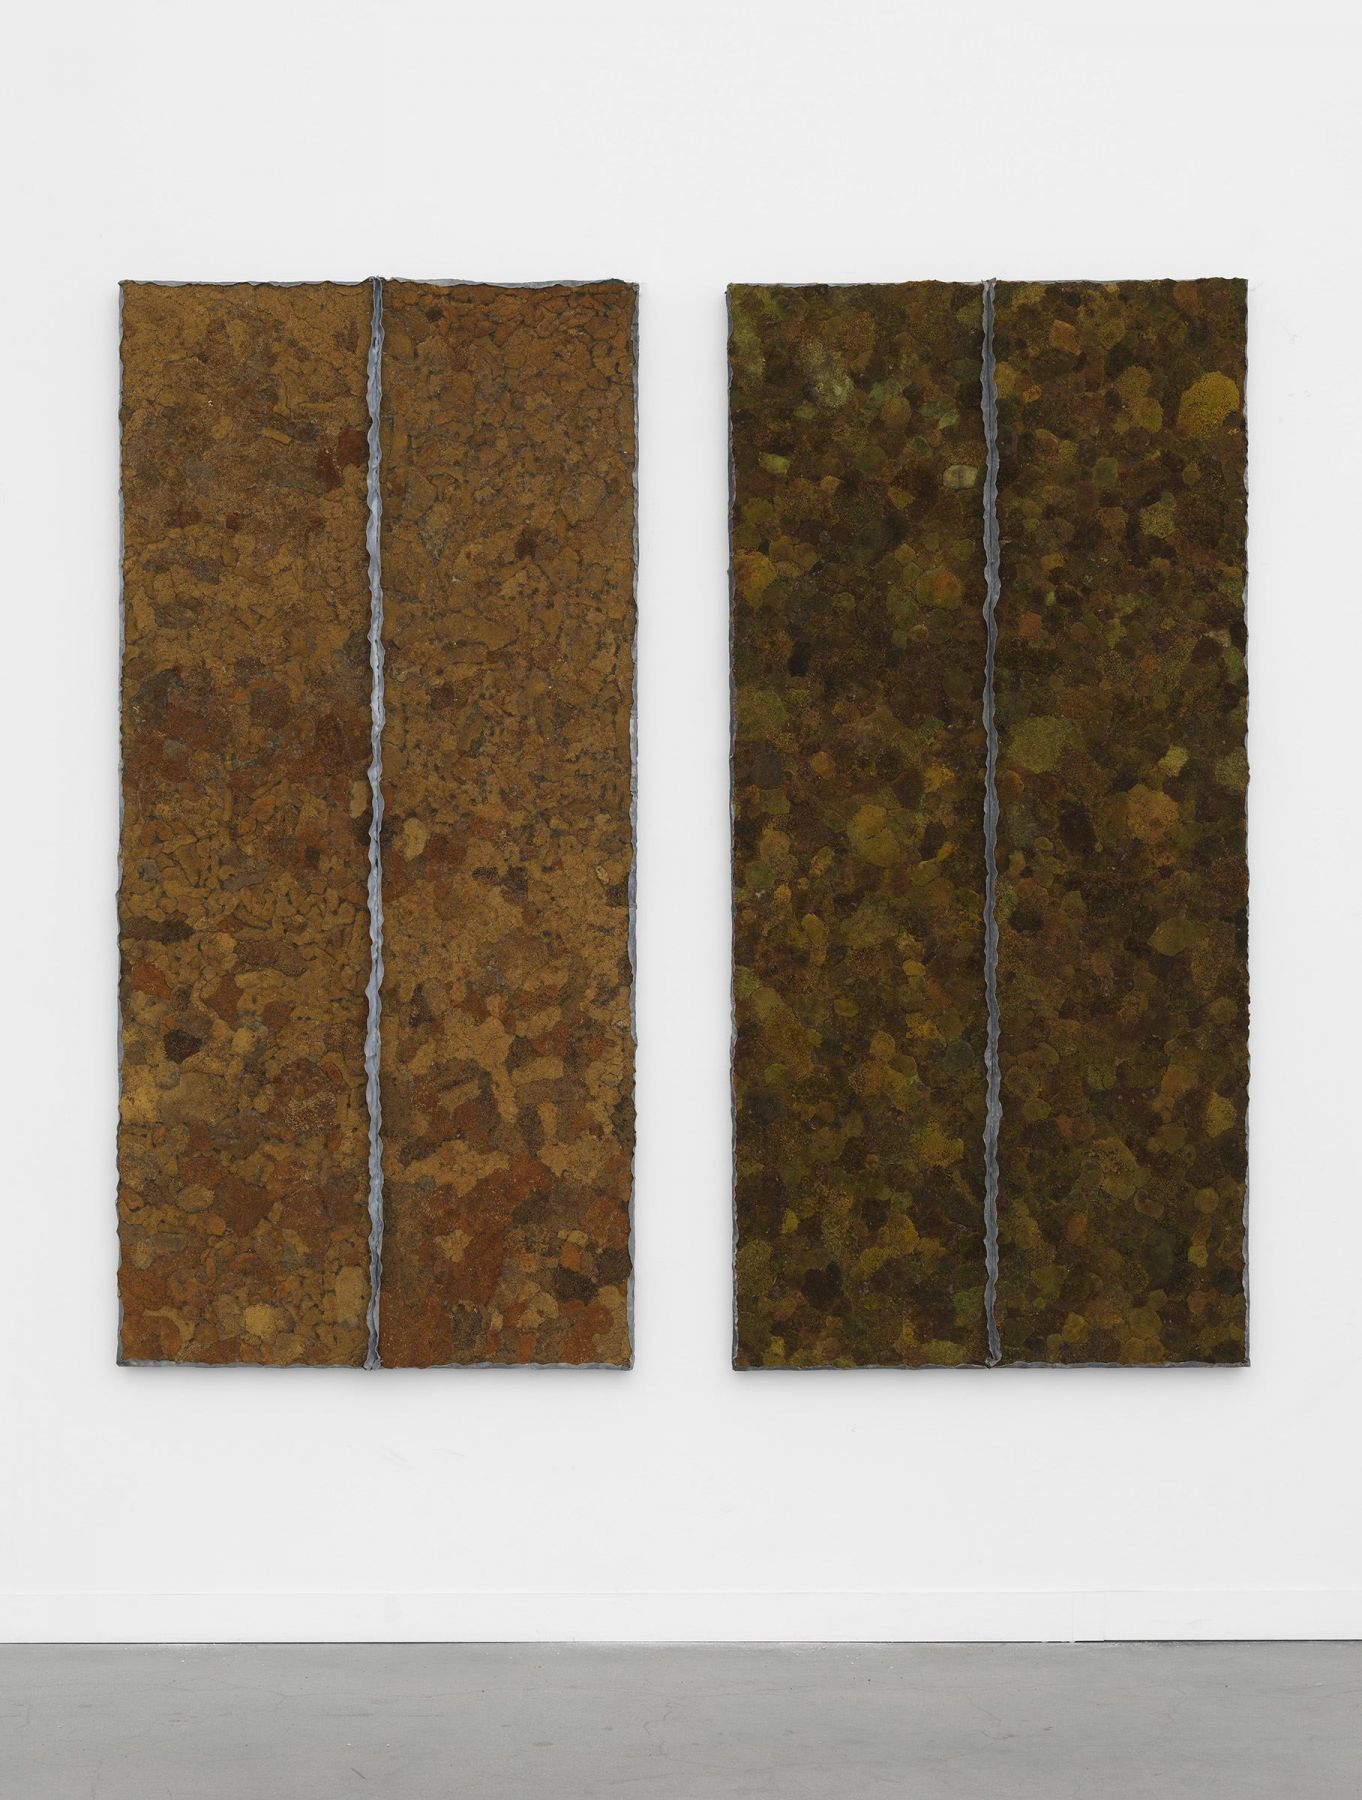 diptych made of dry moss by pier paolo calzolari